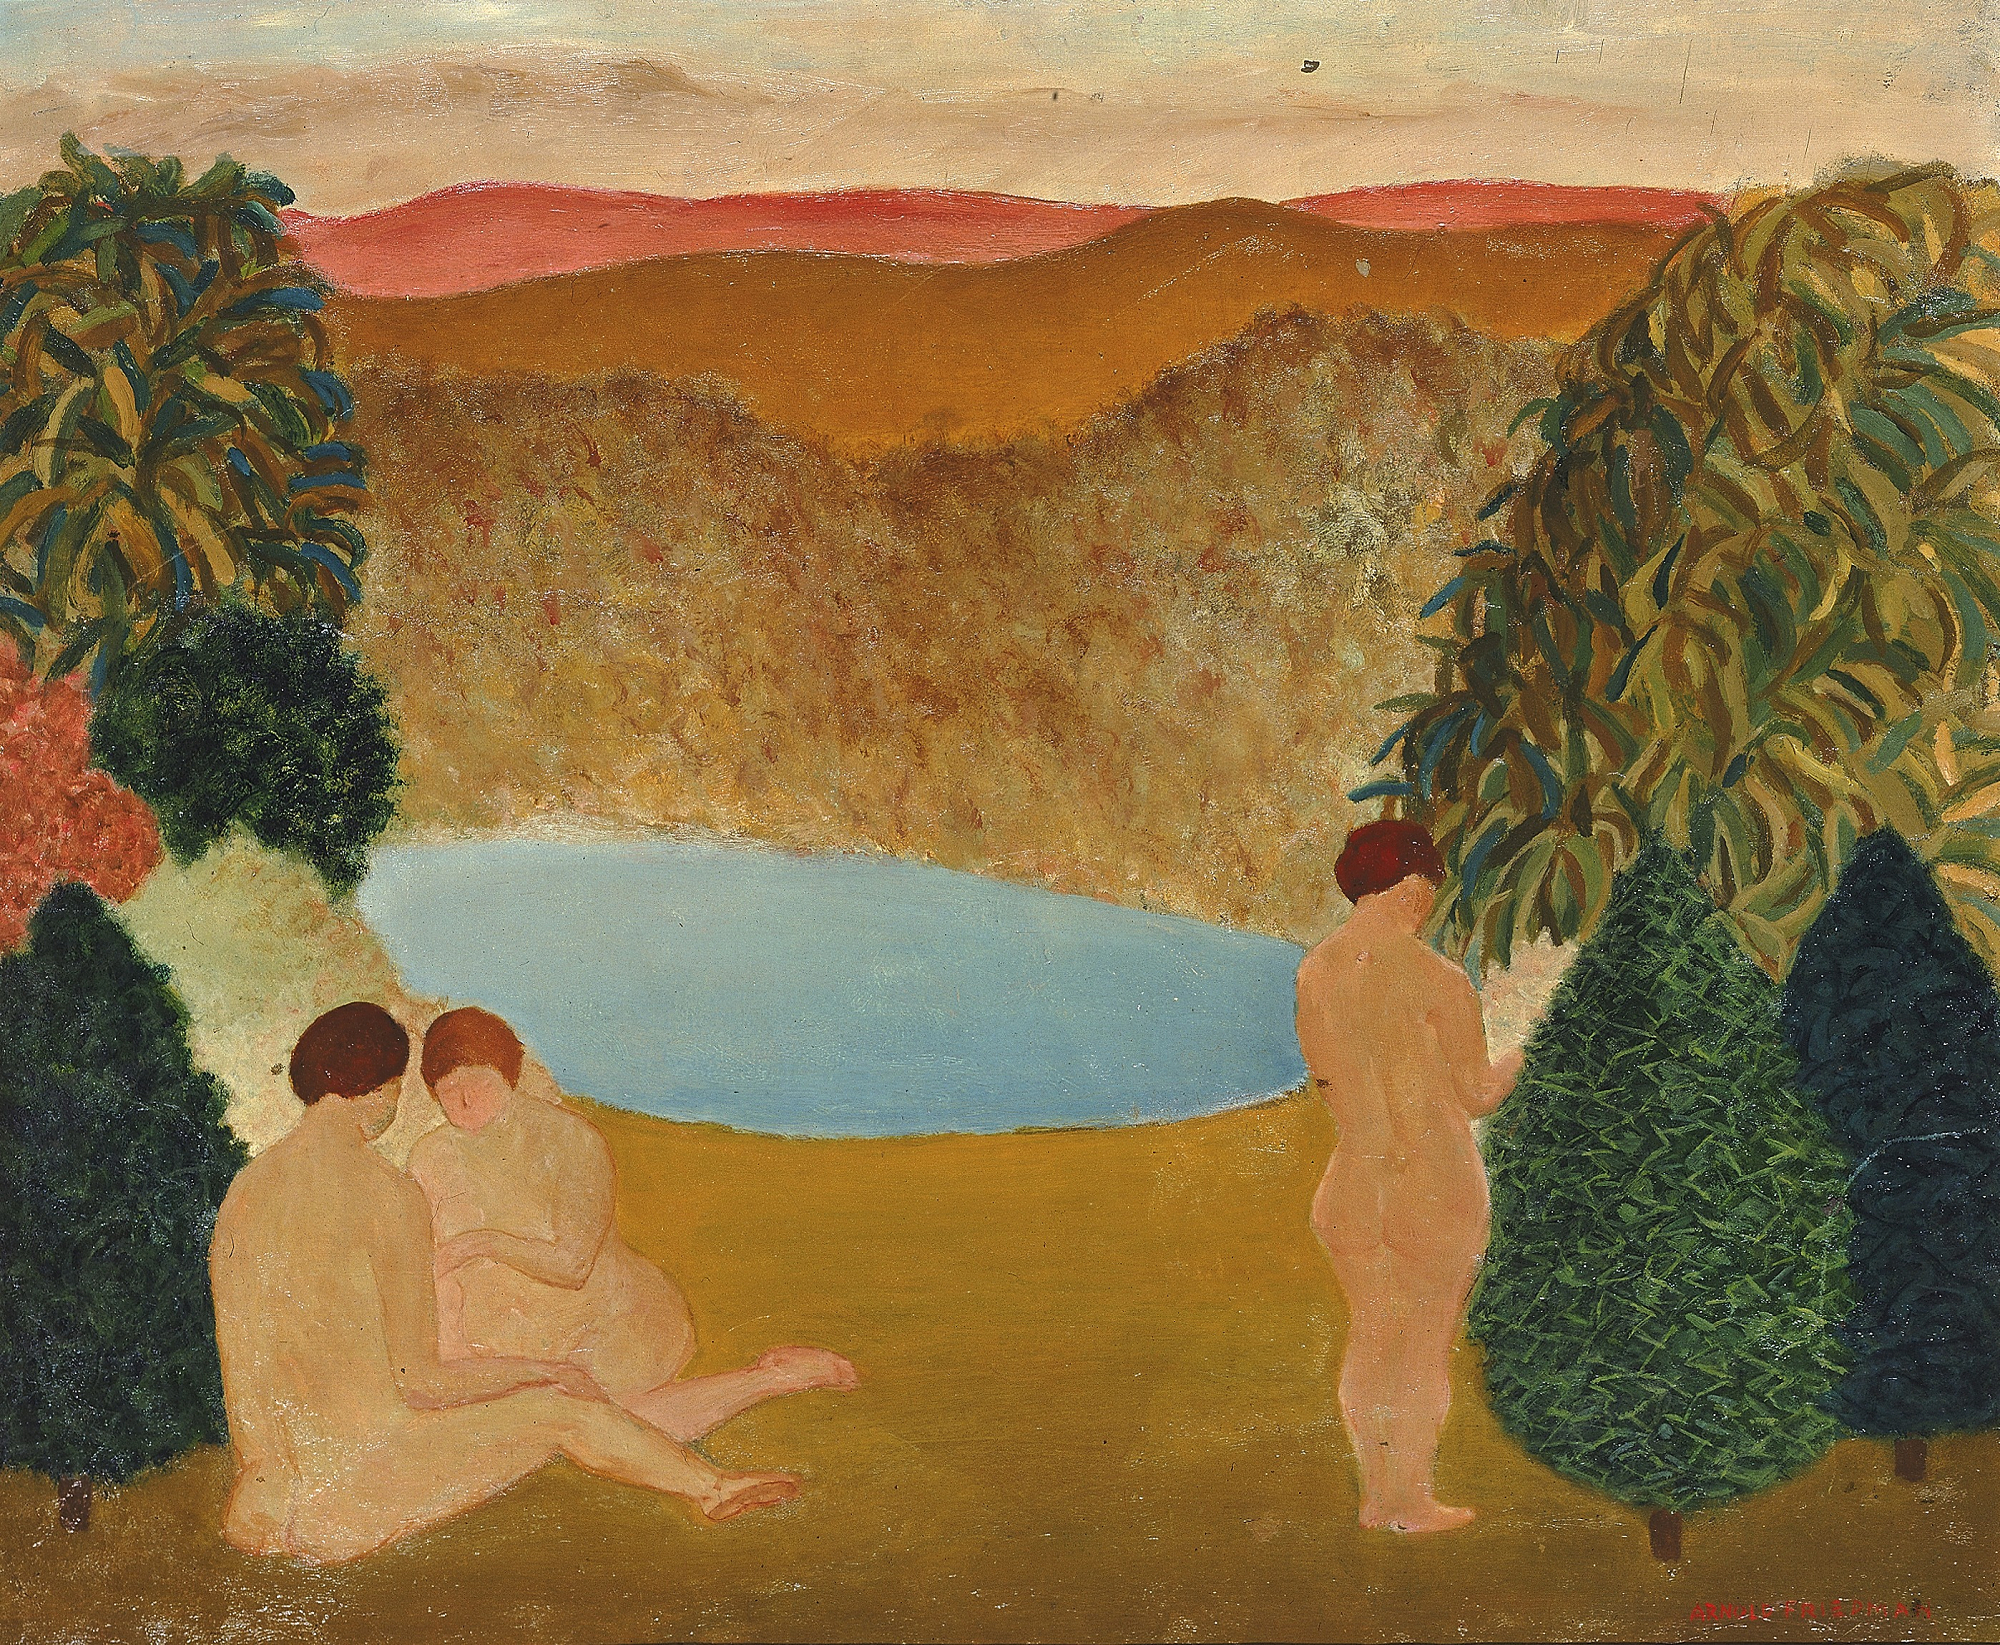 Arnold Friedman, Nudes in Landscape, ca. 1882 and 1946, Smithsonian American Art Museums,